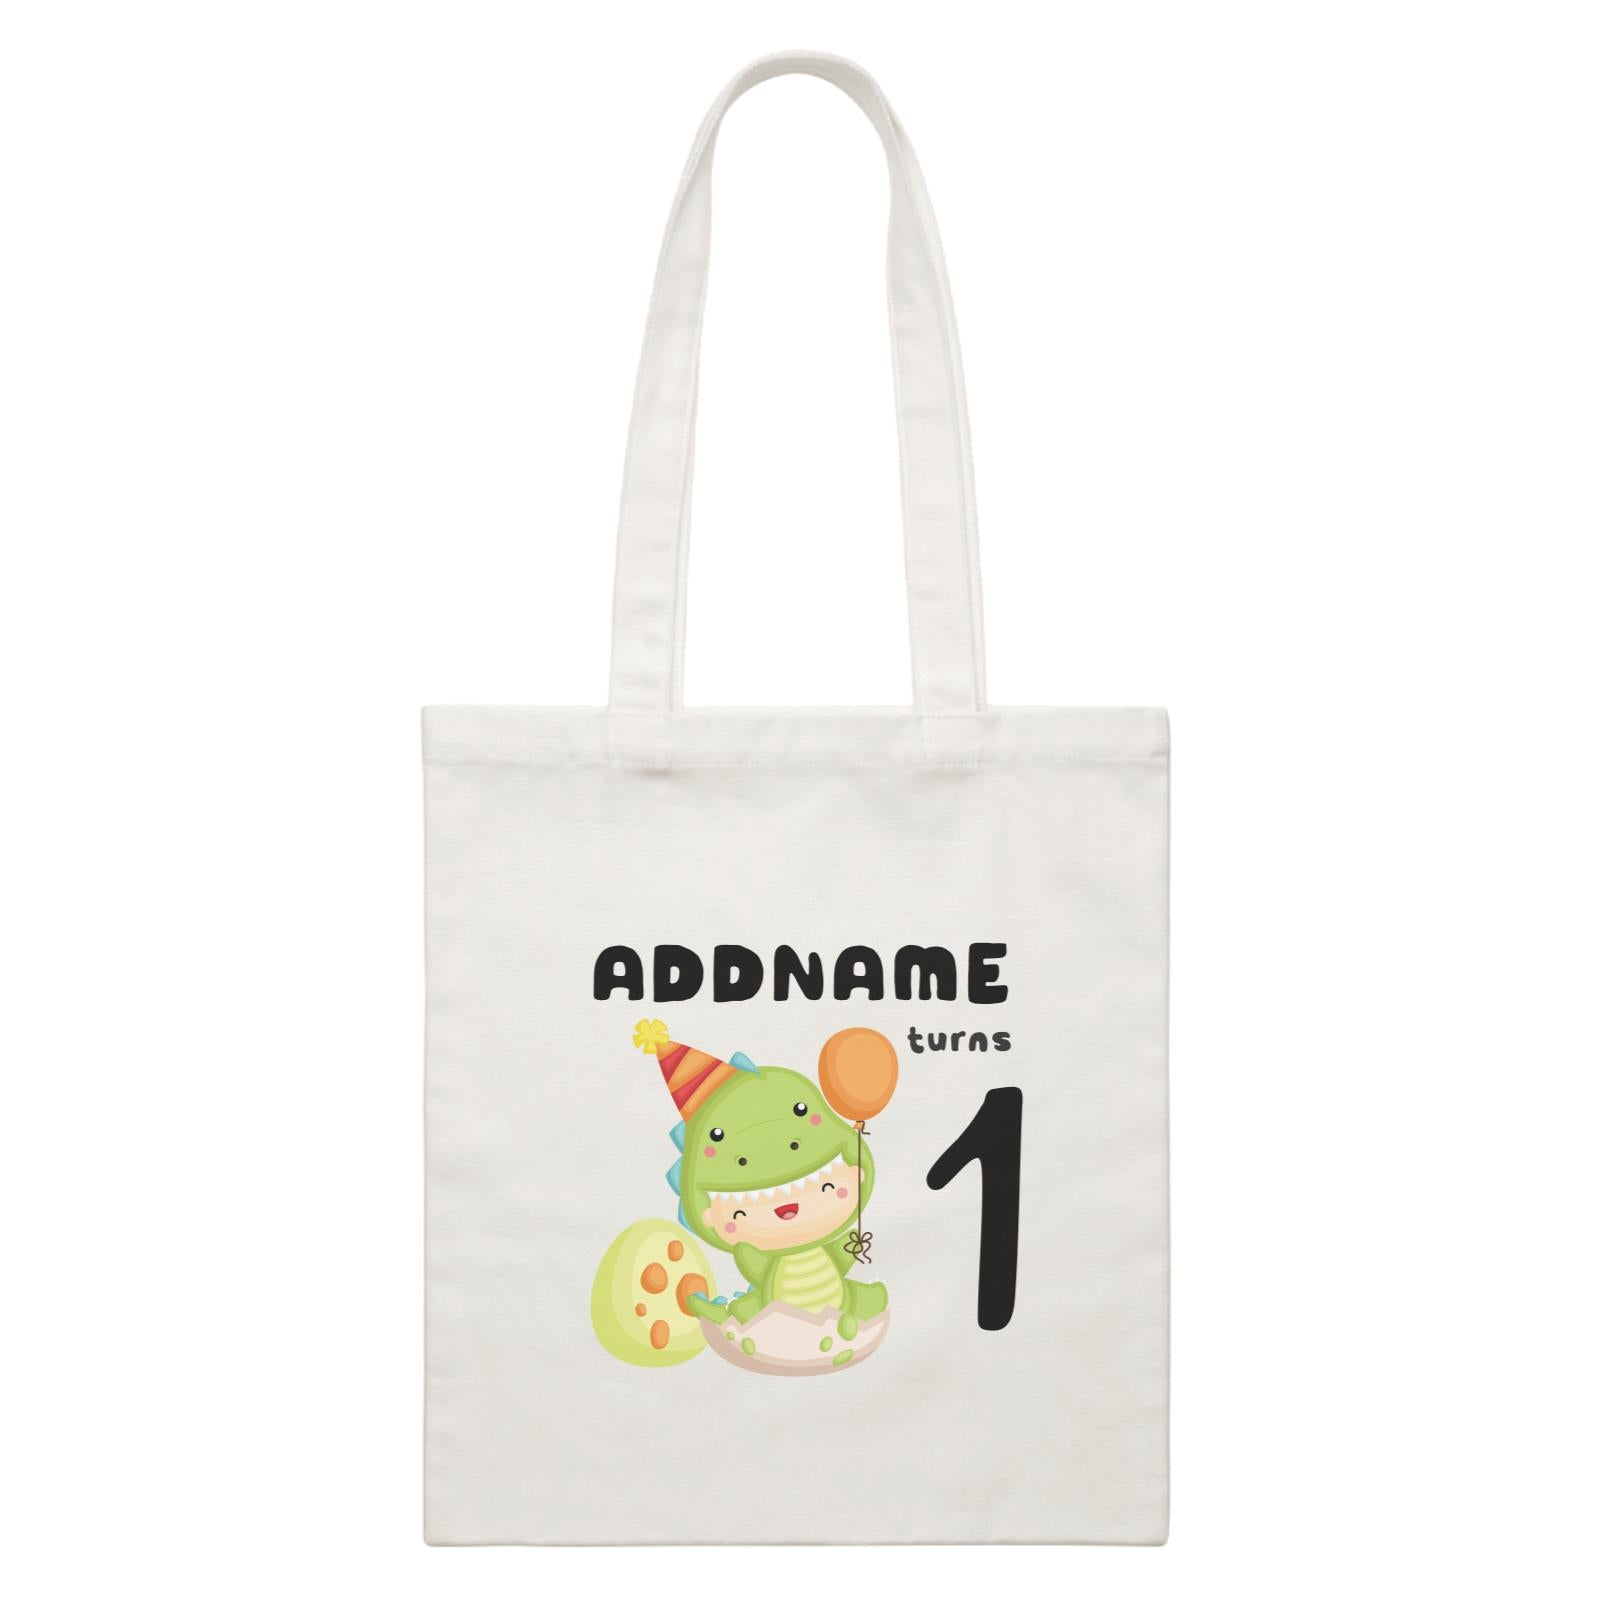 Birthday Dinosaur Happy Baby Wearing Dinosaur Suit Addname Turns 1 White Canvas Bag